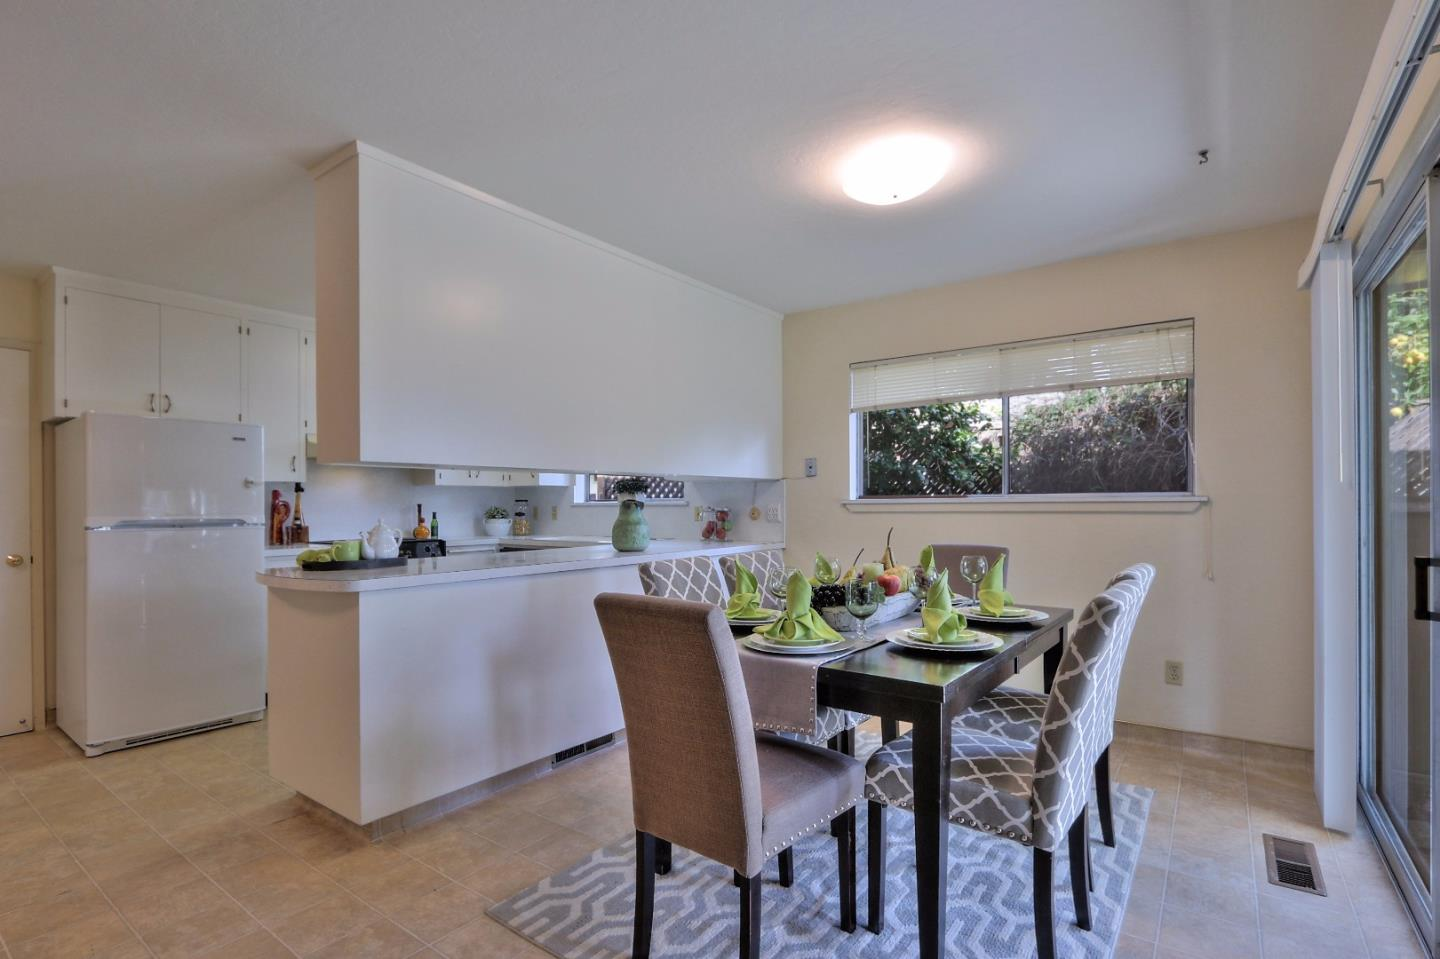 Additional photo for property listing at 624 11th Ave  MENLO PARK, CALIFORNIA 94025